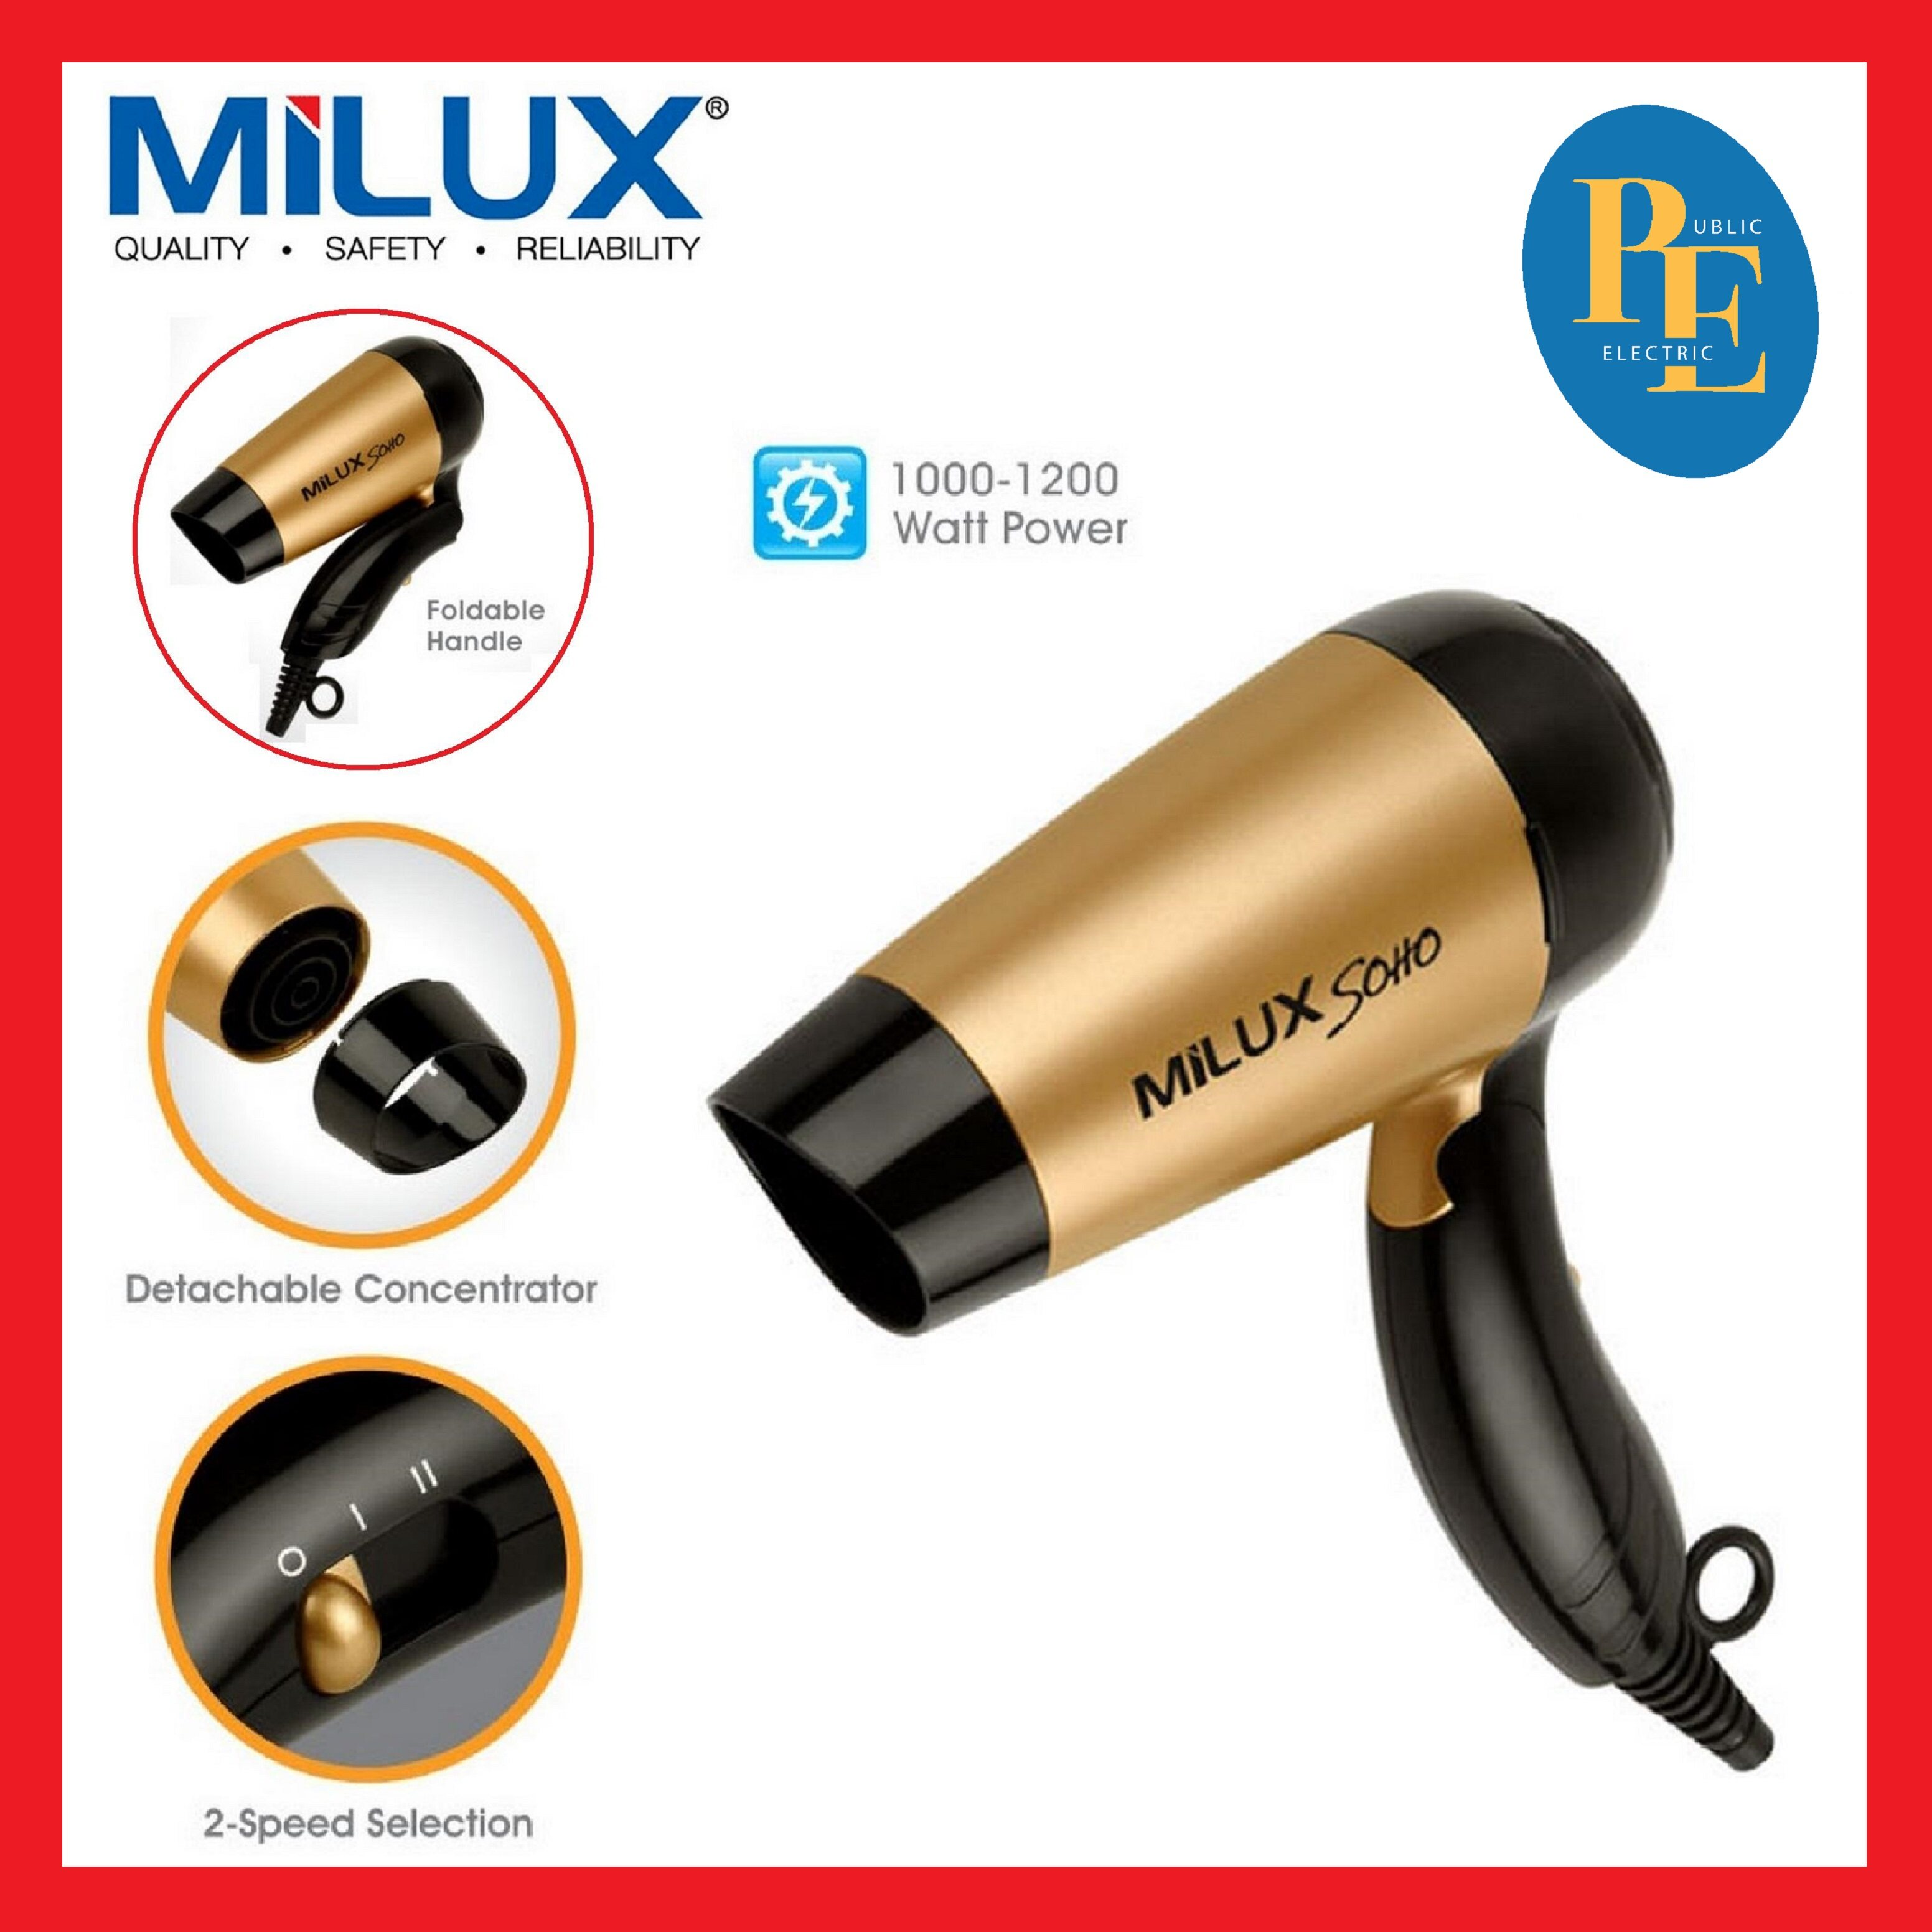 Milux Foldable Handle Hair Dryer - MHD-5901